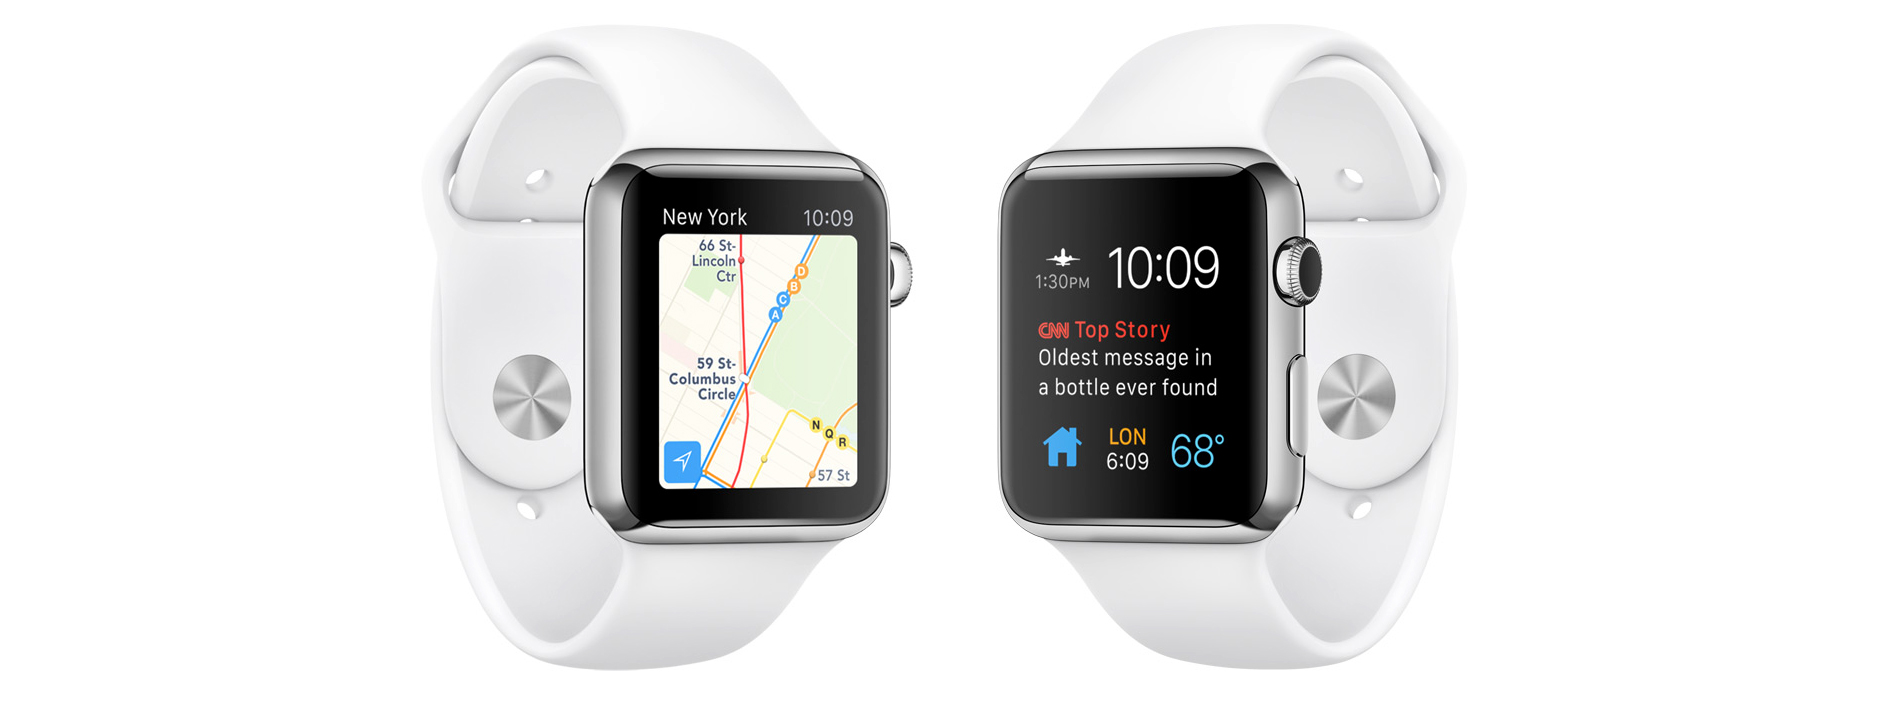 After a short delay, Apple's WatchOS 2.0 is available to download now